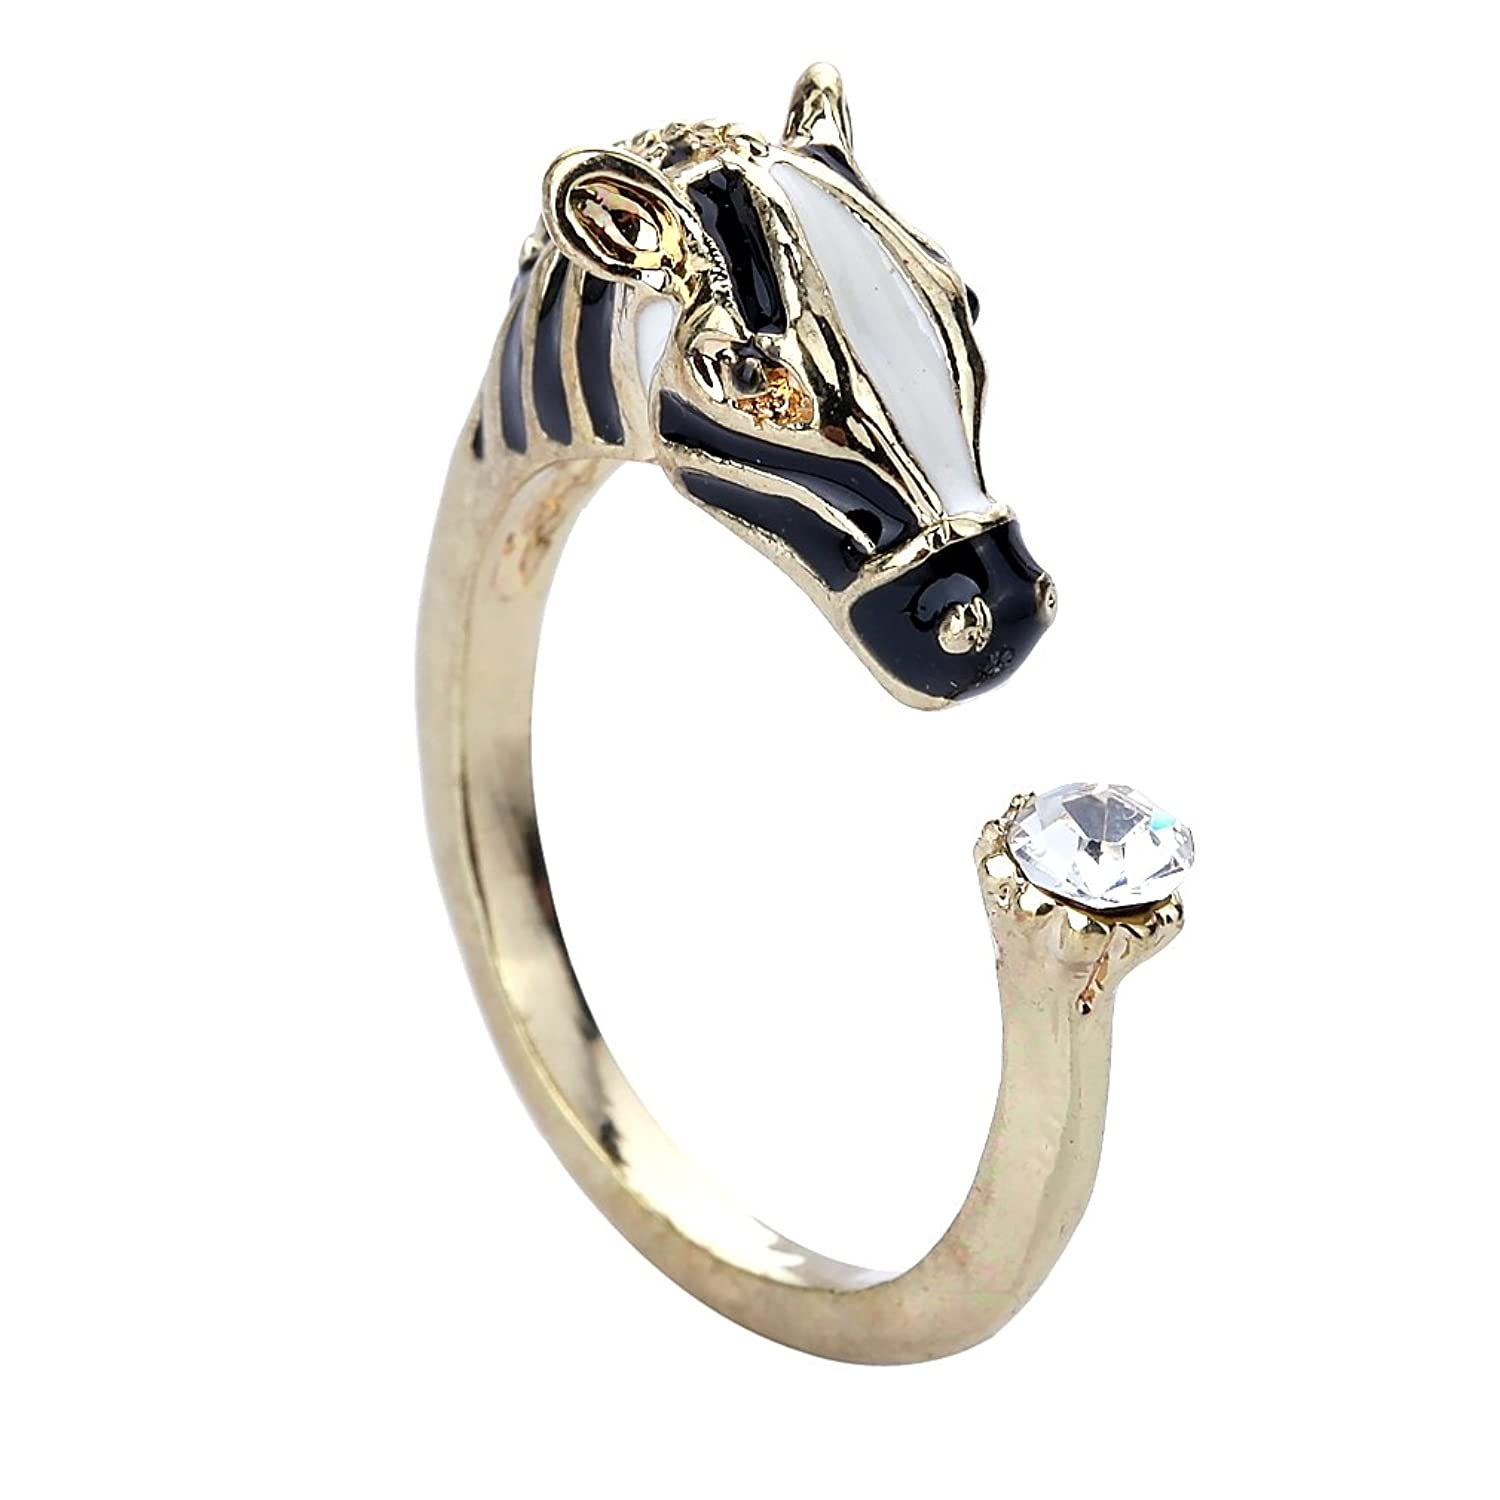 YAZILIND Shiny Jewelry Simple Design Opening Rose Gold Plated Rings for Women Adjustable pkdrMkx7